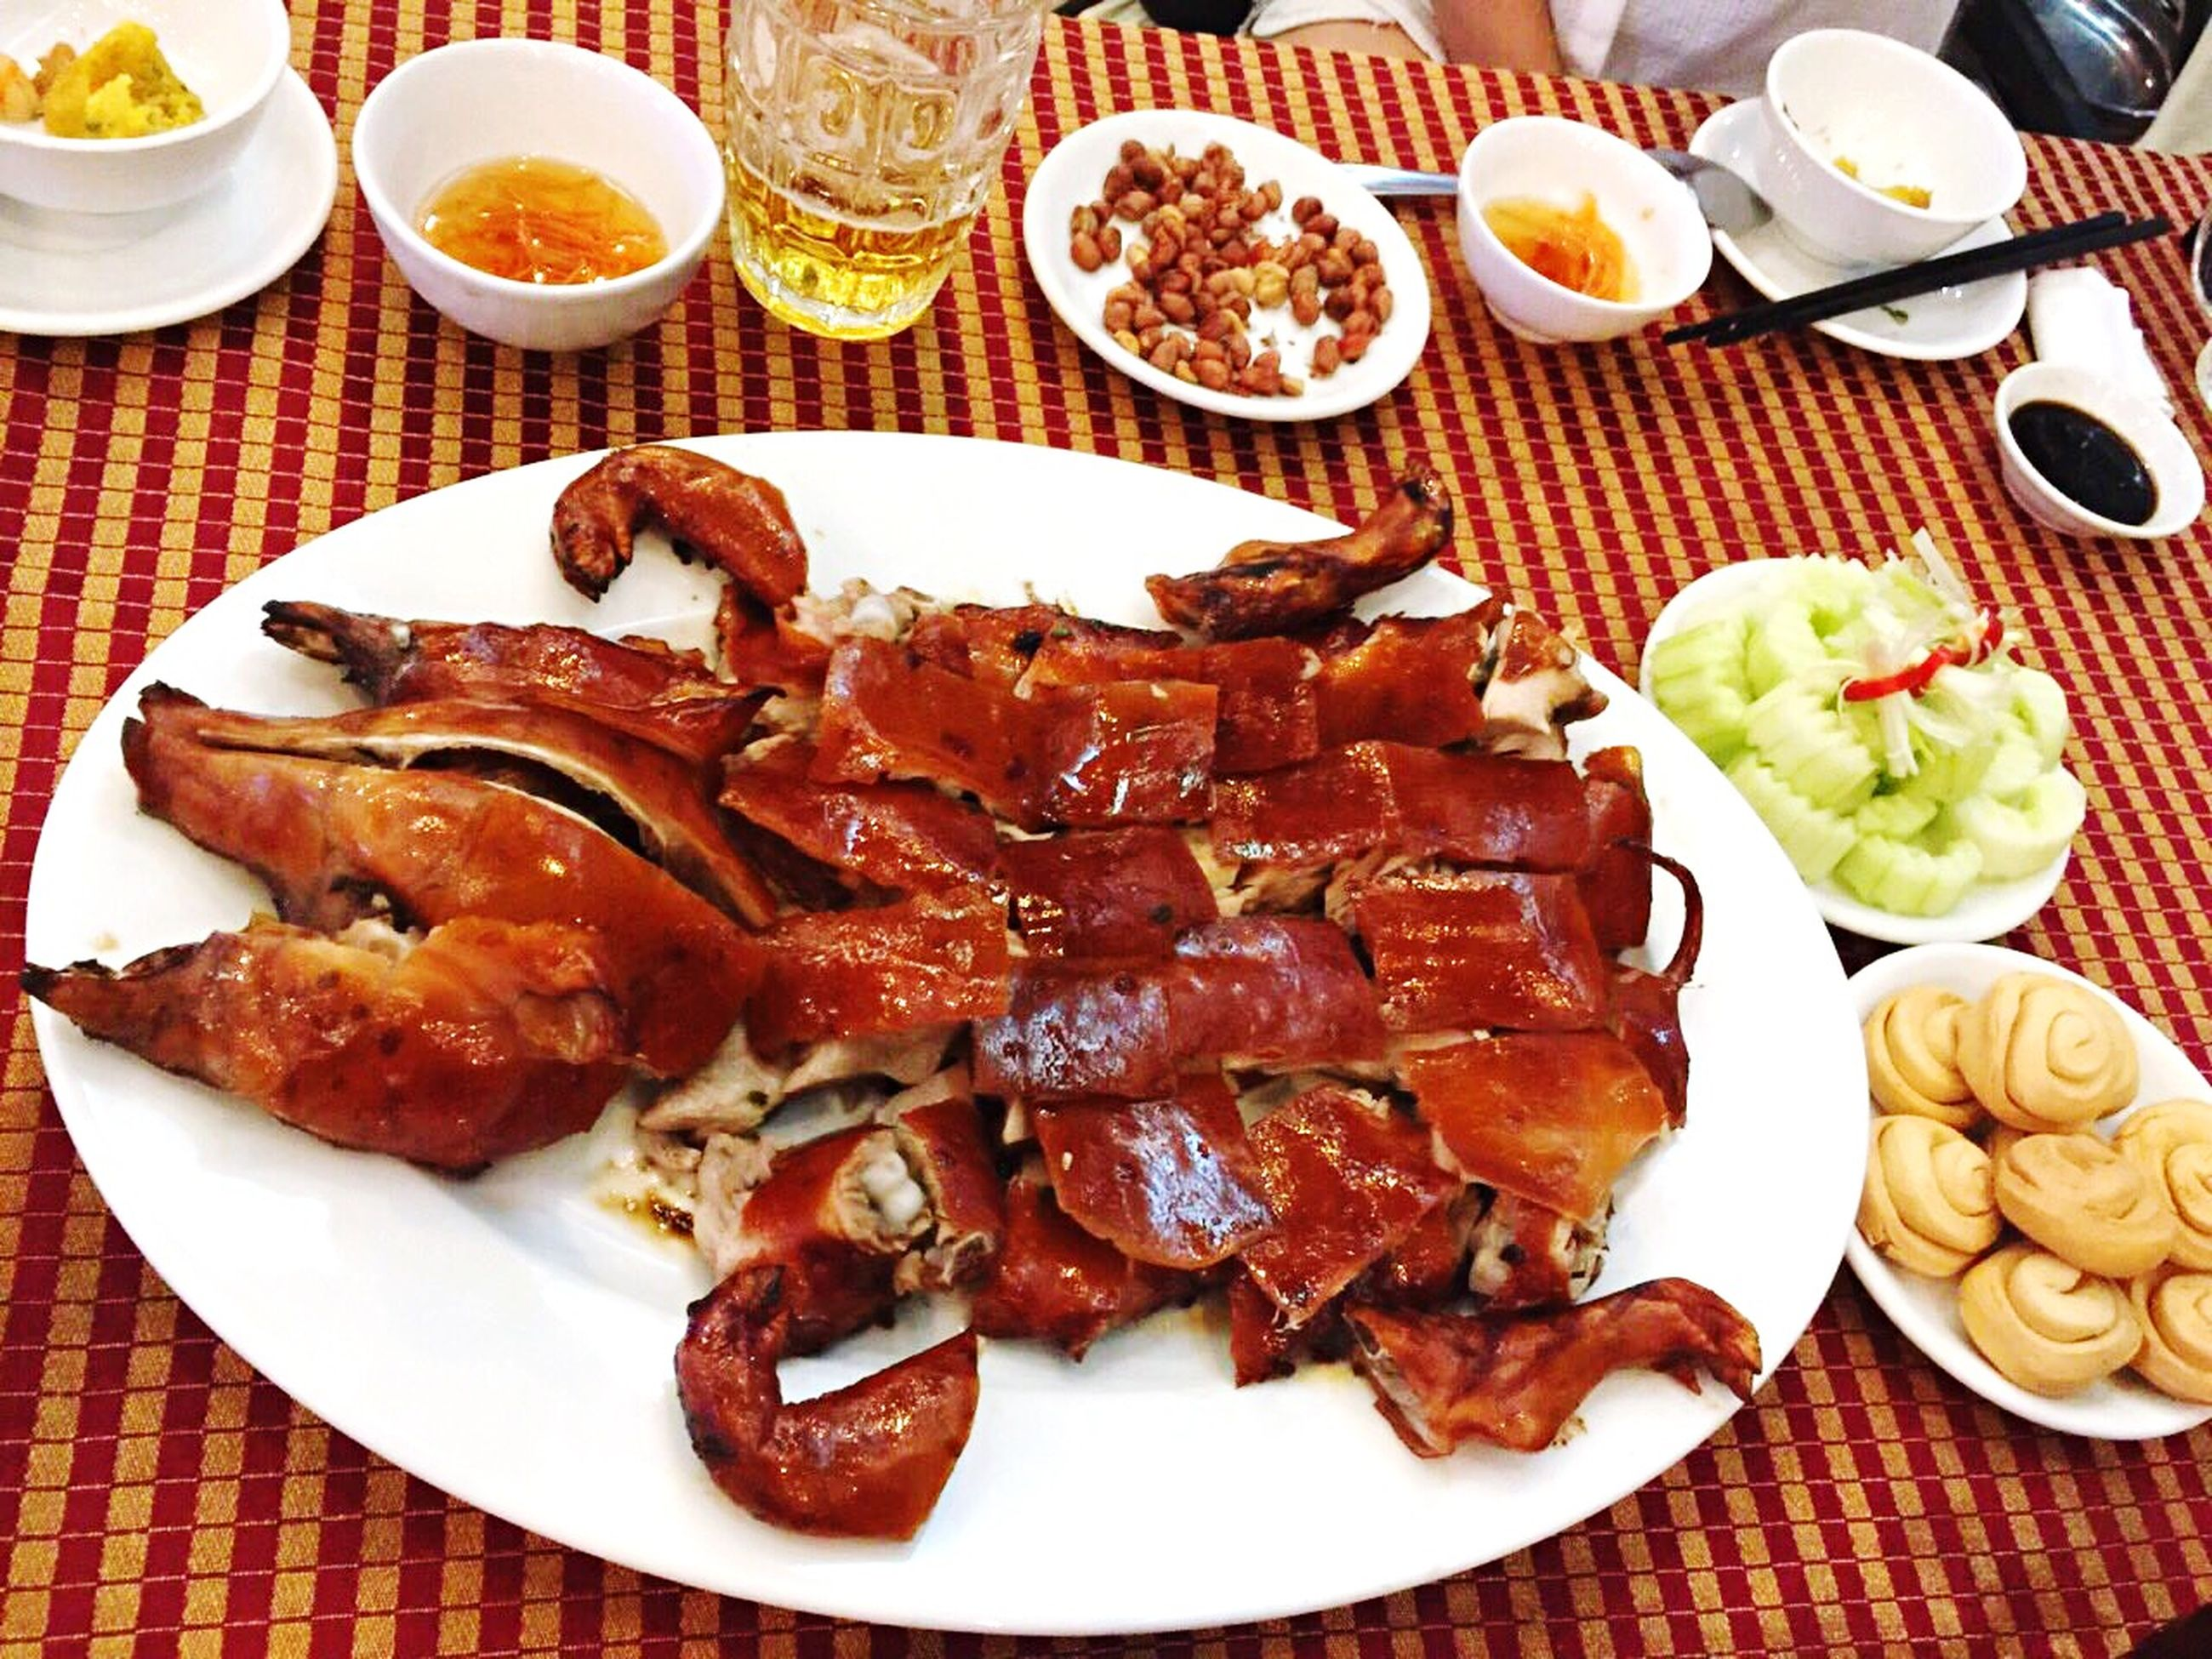 food and drink, food, plate, freshness, ready-to-eat, indoors, table, still life, meat, serving size, meal, healthy eating, served, high angle view, sauce, close-up, seafood, fork, indulgence, salad